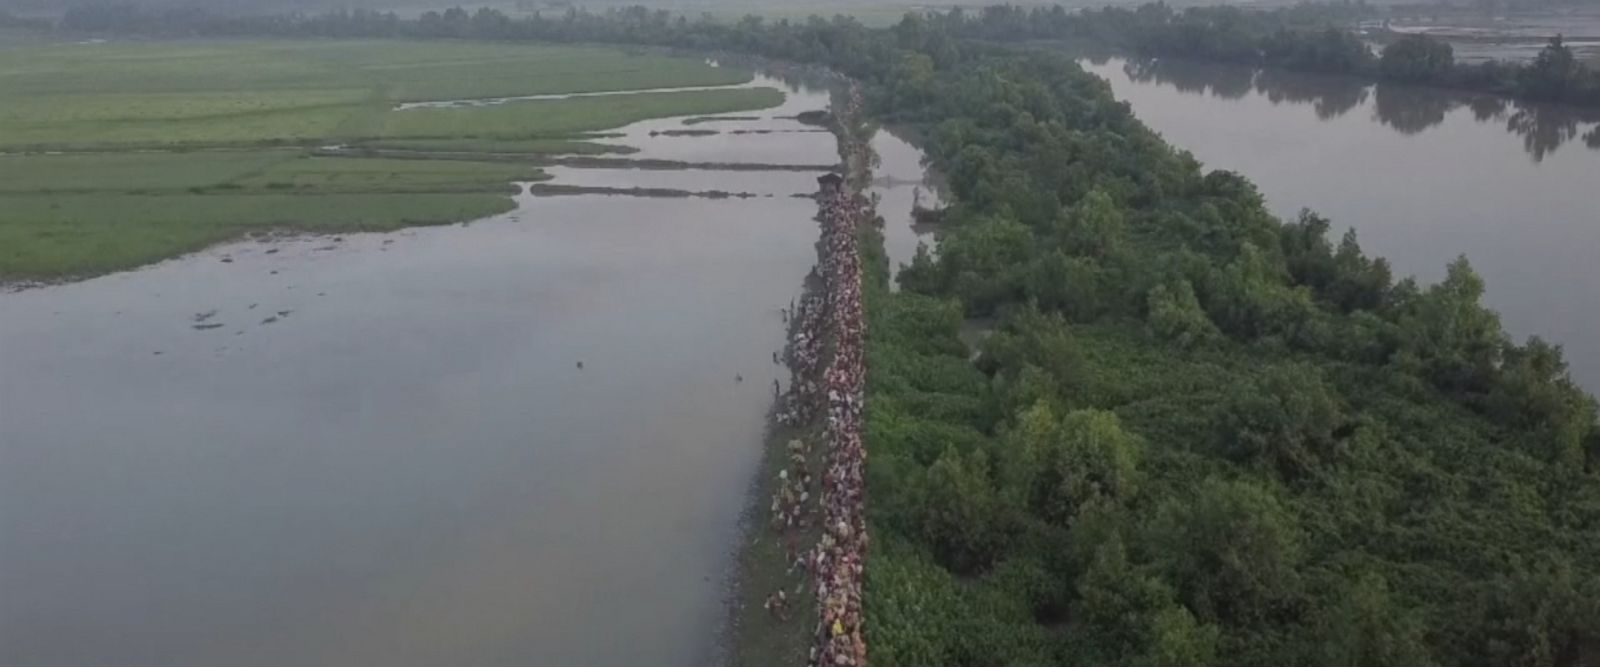 Aerial footage released by the United Nations High Commissioner for Refugees showed the exodus of refugees, with thousands of people seen carrying their belongings on foot along narrow paths flanked by rivers.